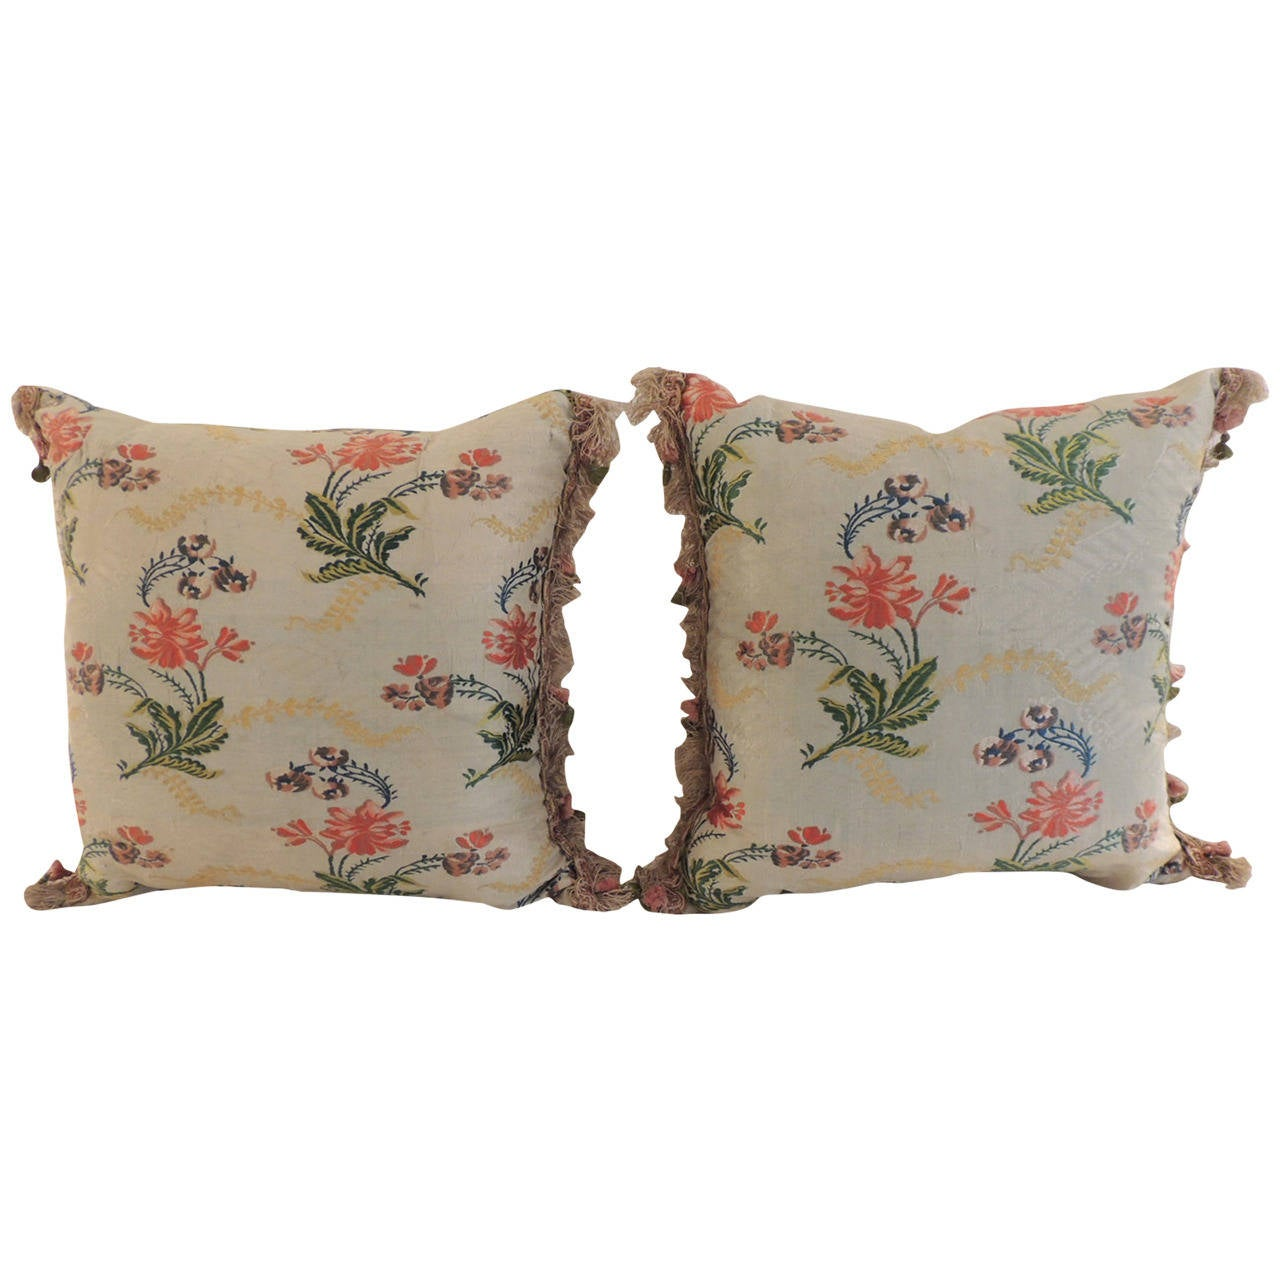 Pair of Antique Silk Brocade Floral Decorative Pillows with Tassel Trim For Sale at 1stdibs